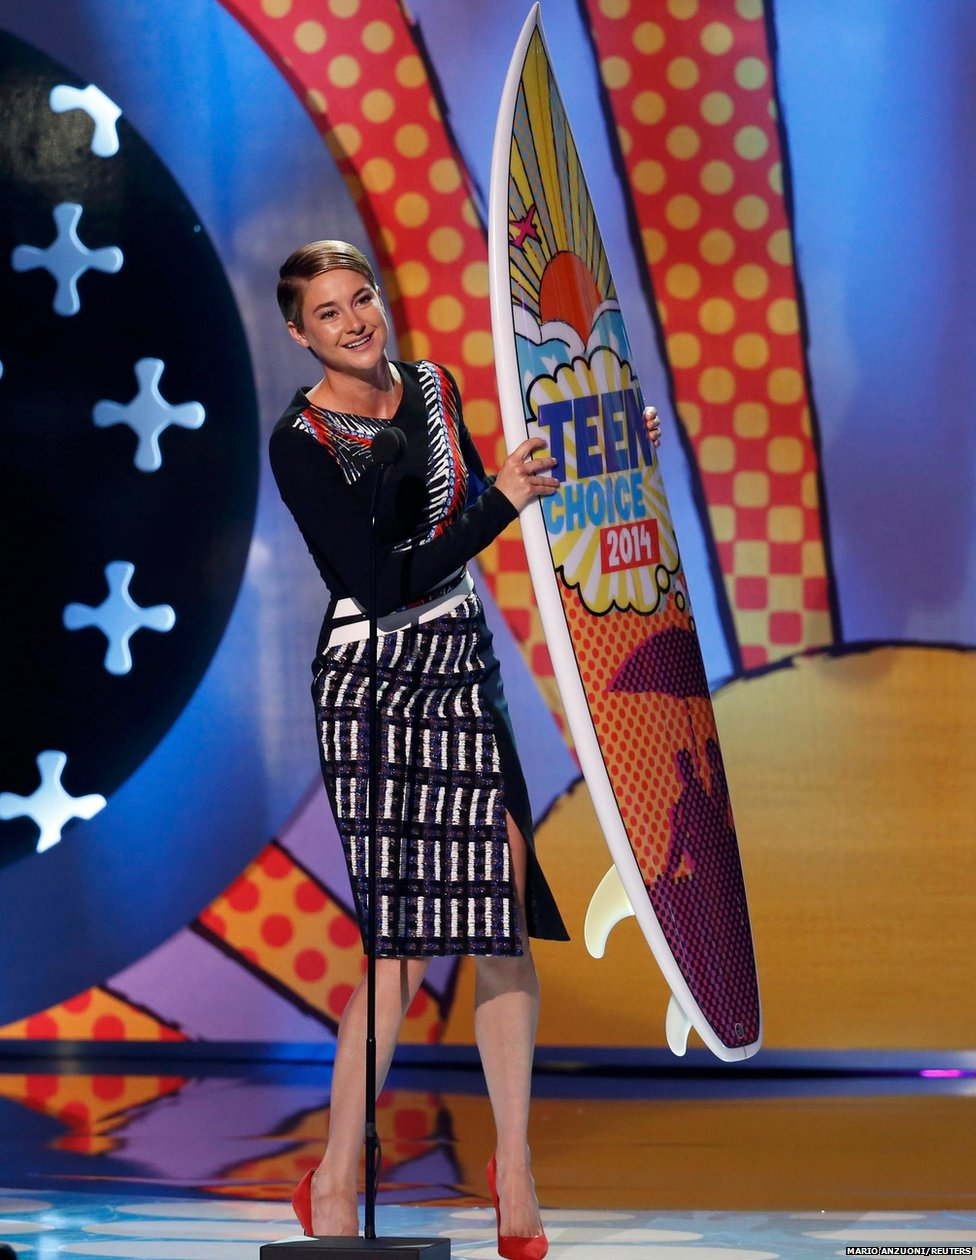 Shailene Woodley accepts an award for her role in  the film Divergent at the Teen Choice Awards 2014 in Los Angeles, California